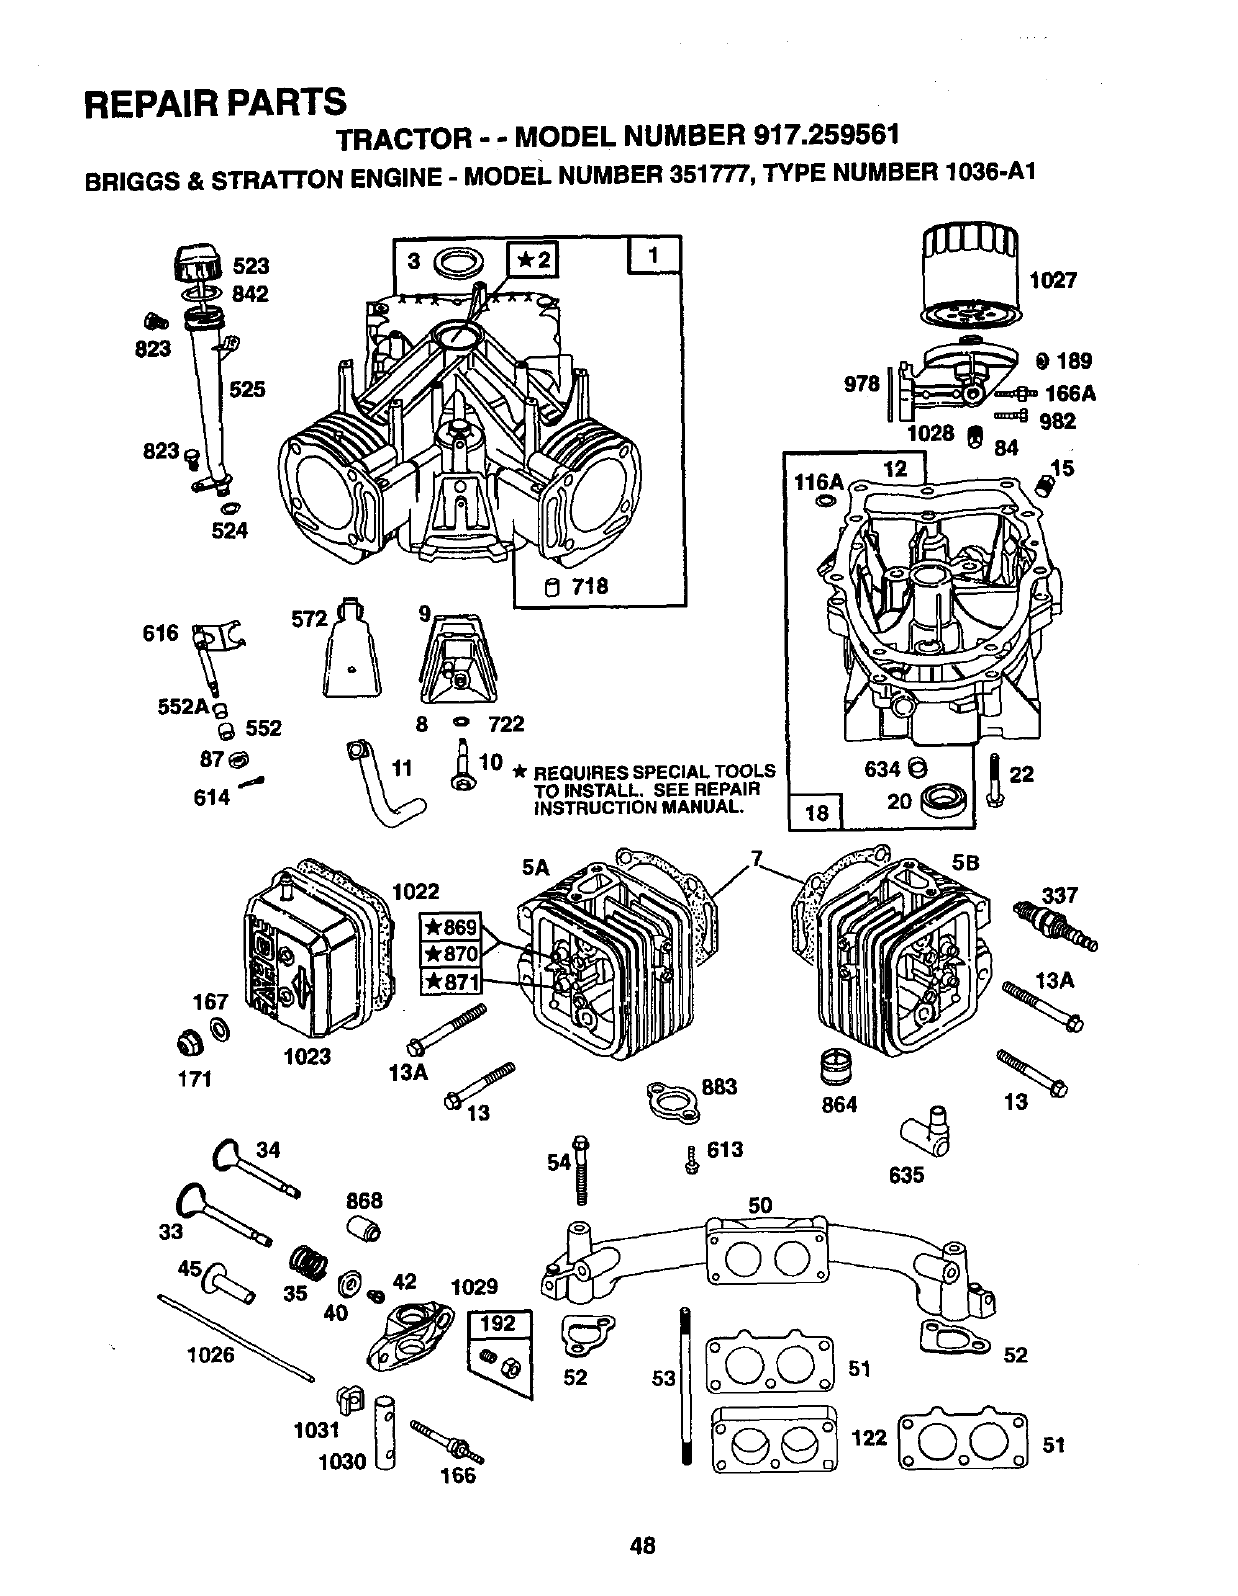 Page 48 of Craftsman Lawn Mower 917.259561 User Guide